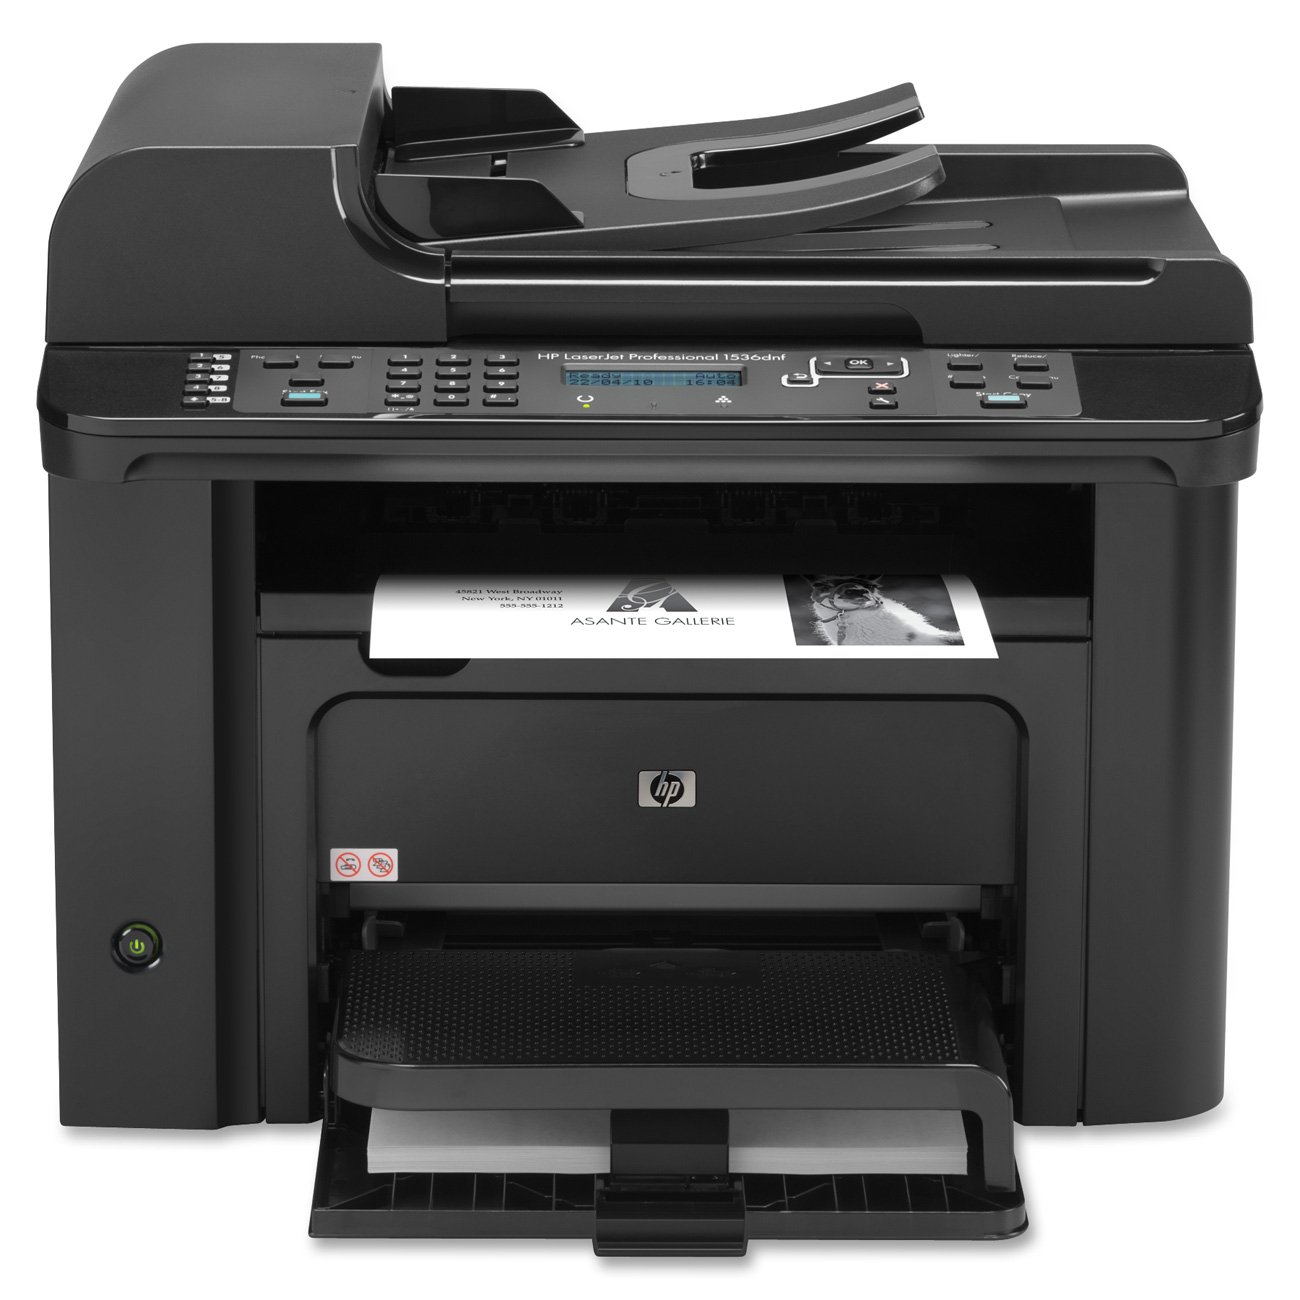 Amazon.com: HP LaserJet Pro M1536dnf Multifunction Printer: Office Products